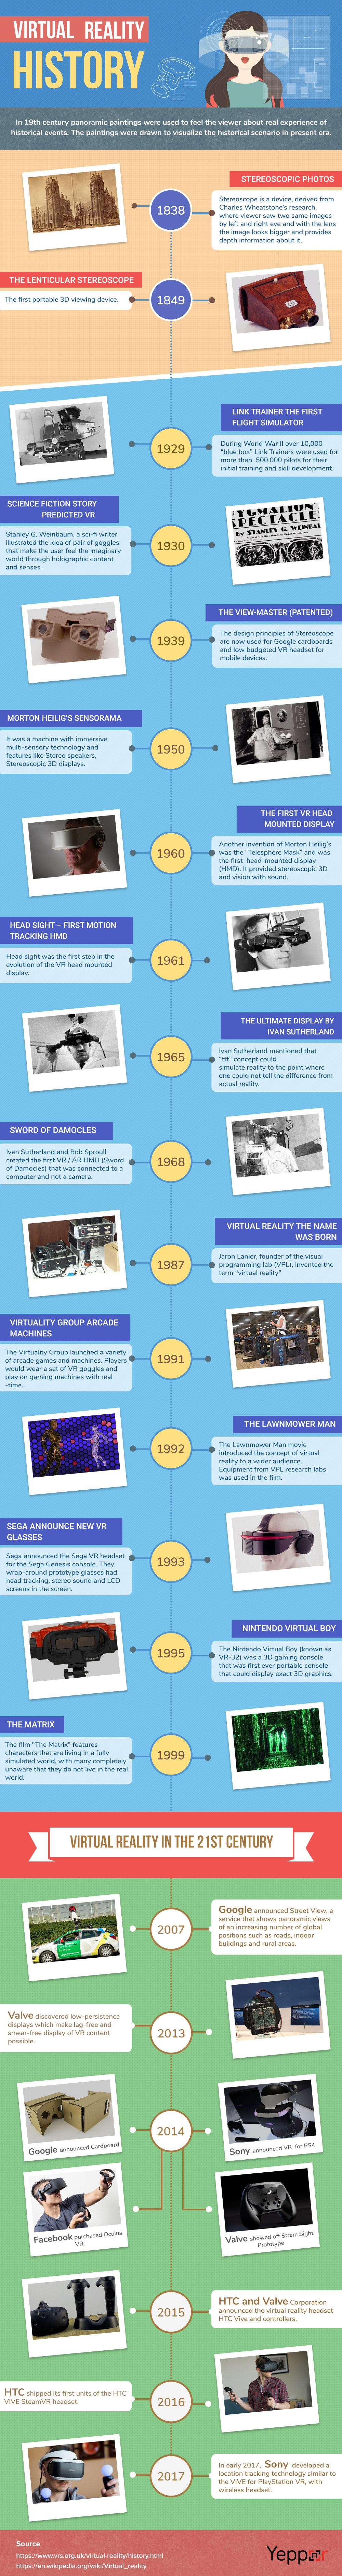 Infographic: Virtual Reality Technology Evolution Detailed Analysis - Image 1